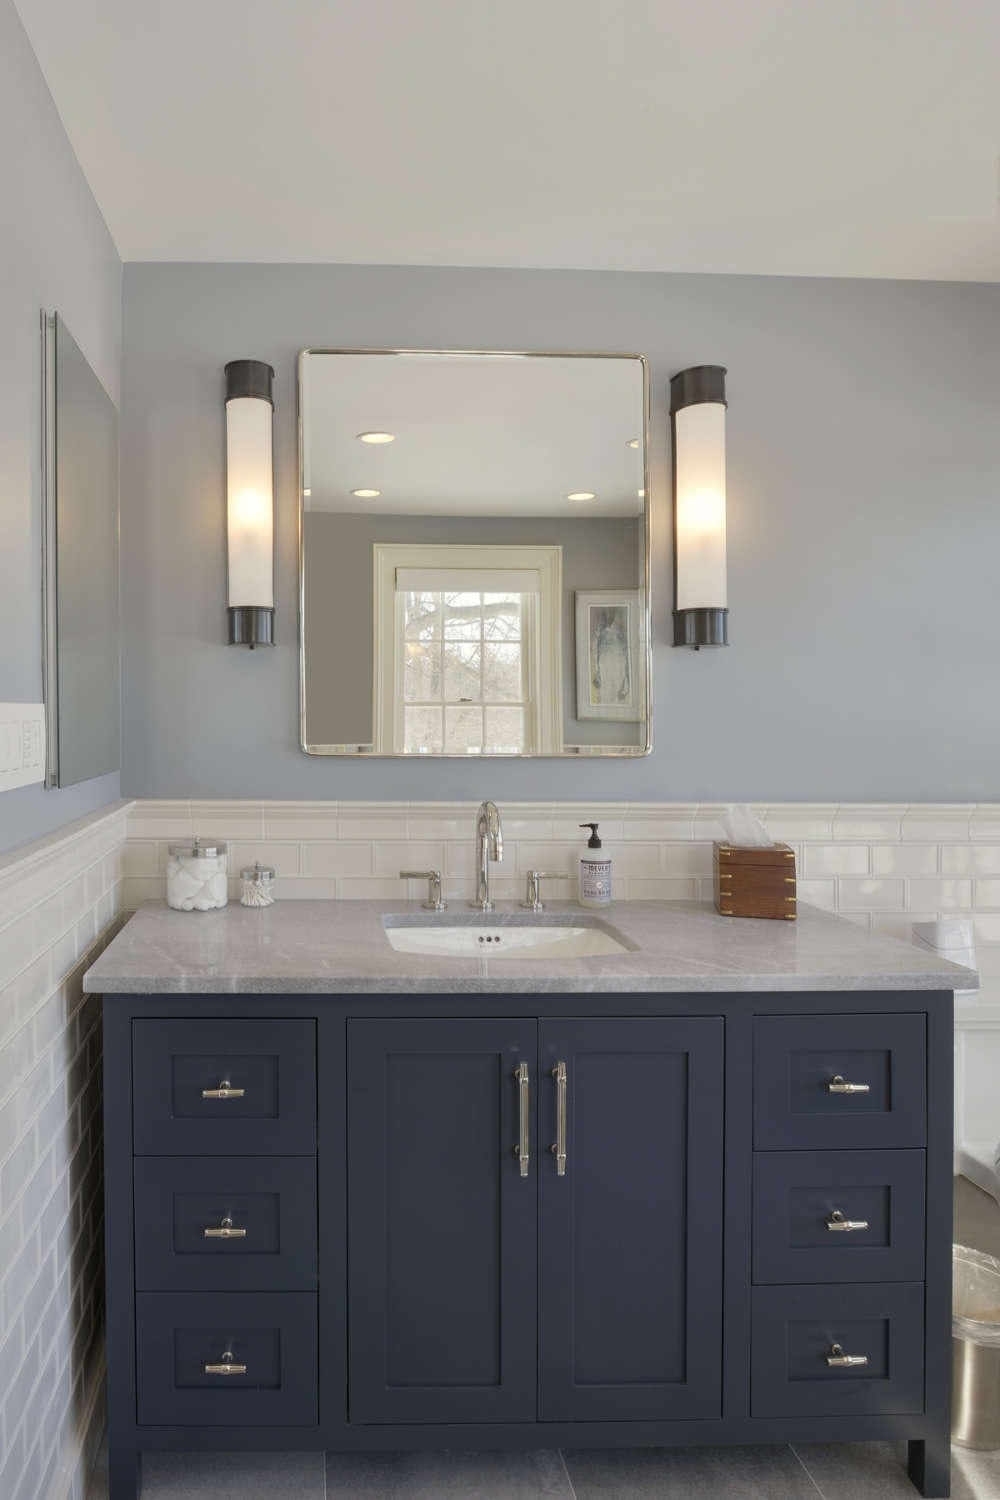 Transitional style master bath features blue painted fully custom vanity by Bilotta Cabinetry with grey marble top with undermount sink, white tiled walls up to the chair rail and light blue painted walls above the chair rail. Design by Paulette Gambacorta of Bilotta Kitchens.